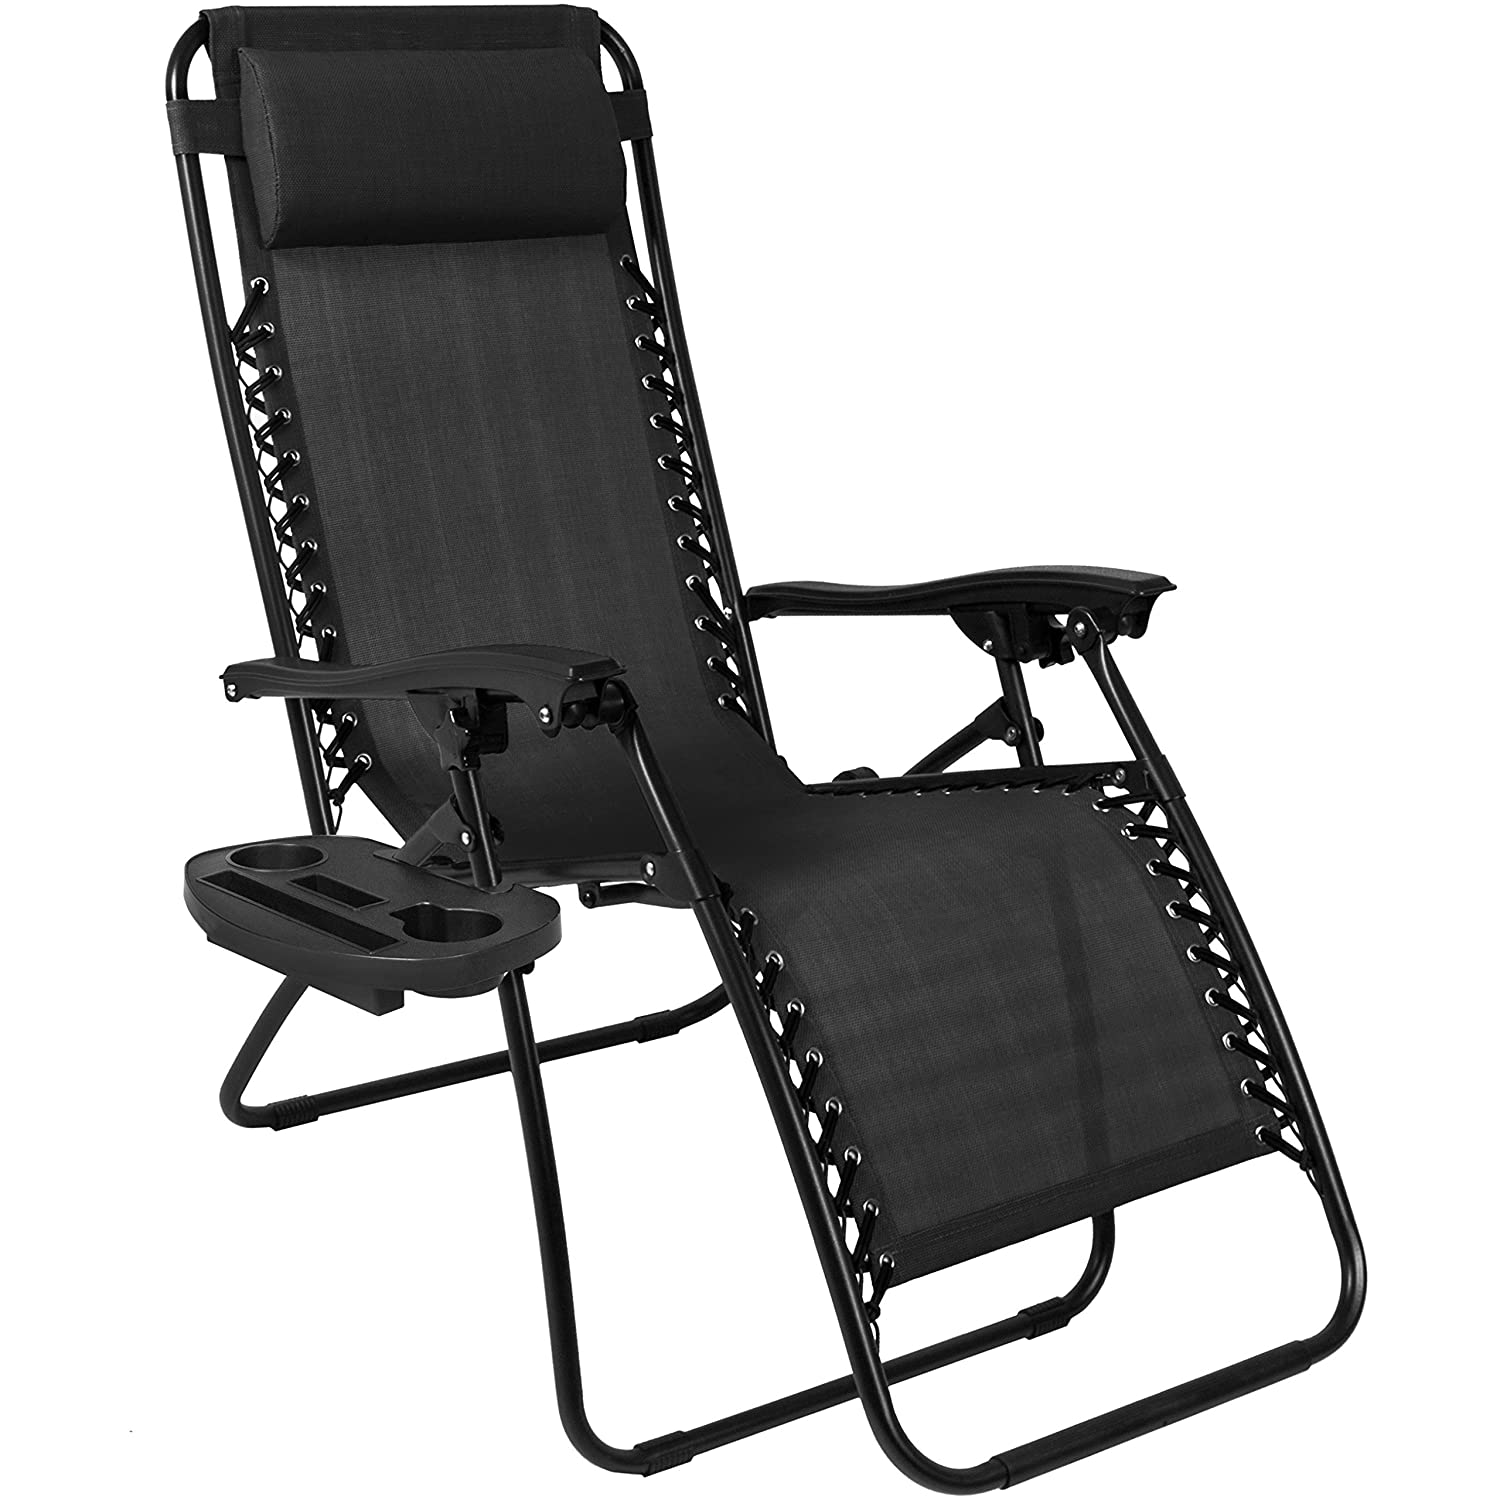 Beach lounge chair portable - Best Choice Products Zero Gravity Chairs Case Of 2 Black Lounge Patio Chairs Outdoor Yard Beach New